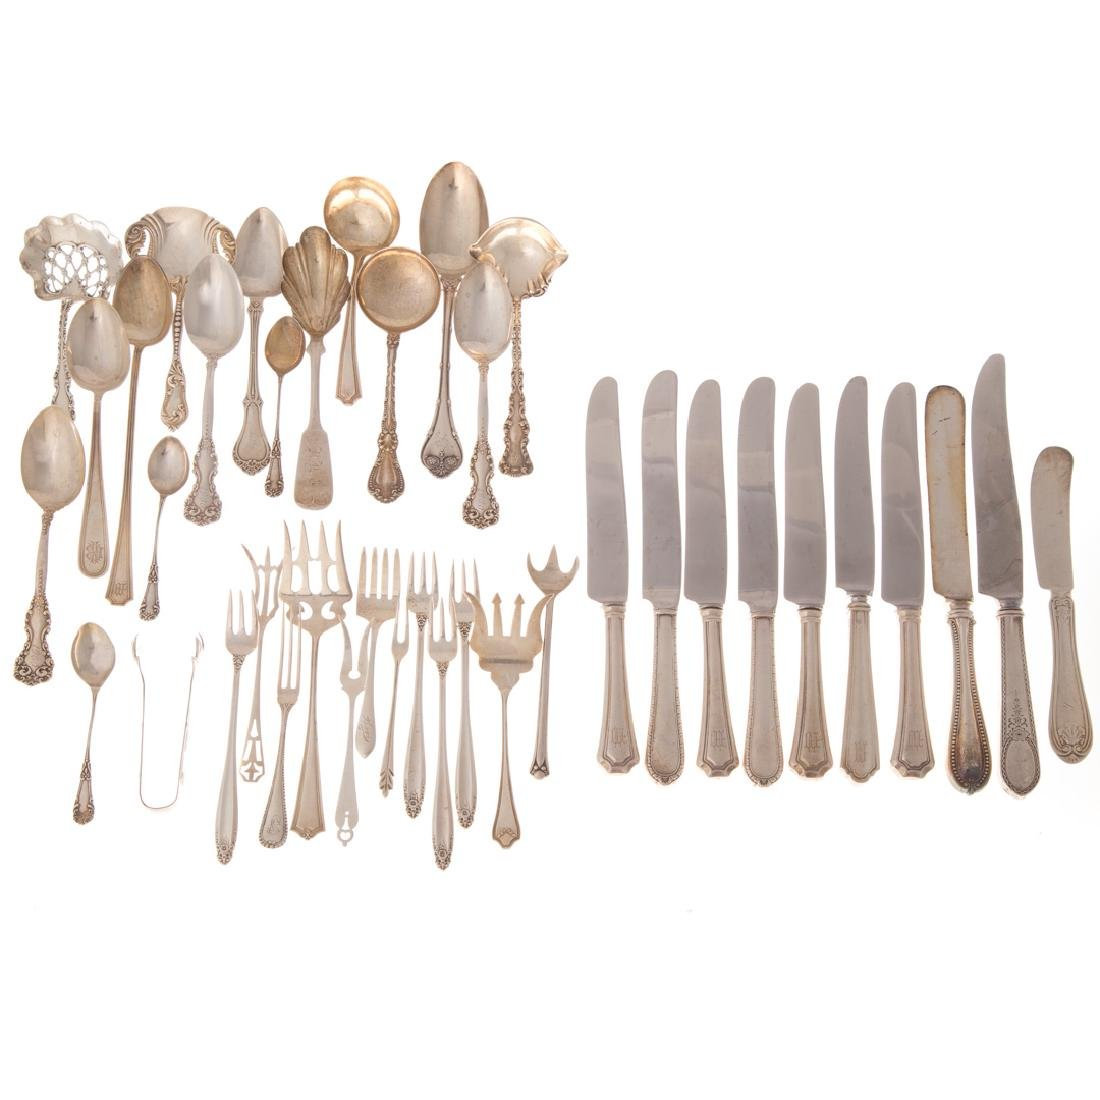 Collection of sterling silver flatware